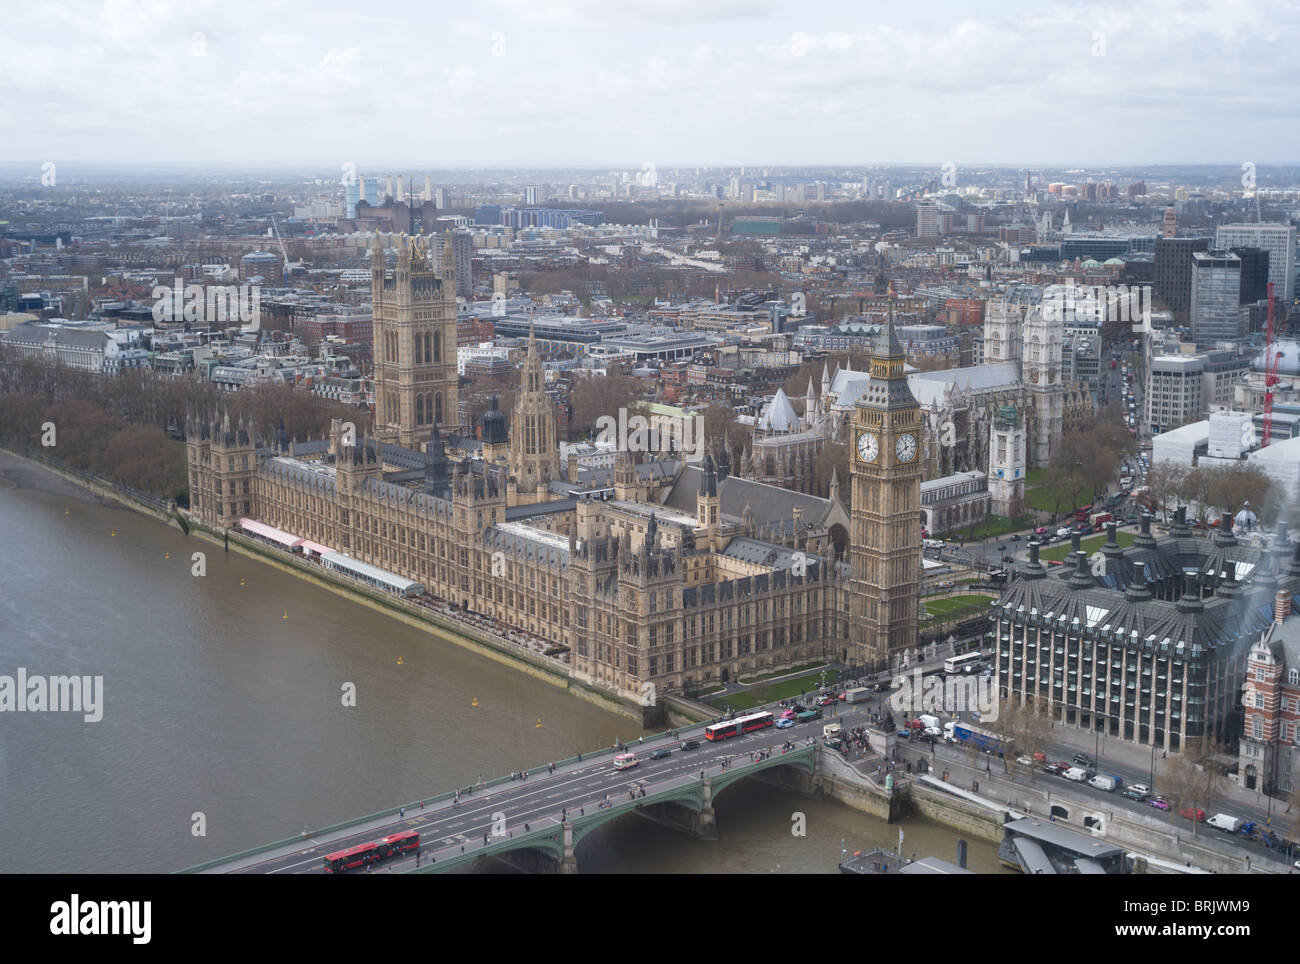 A birds eye view over the Thames of the Palace of Westminster (Houses of Parliament) and Westminster from the London - Stock Image